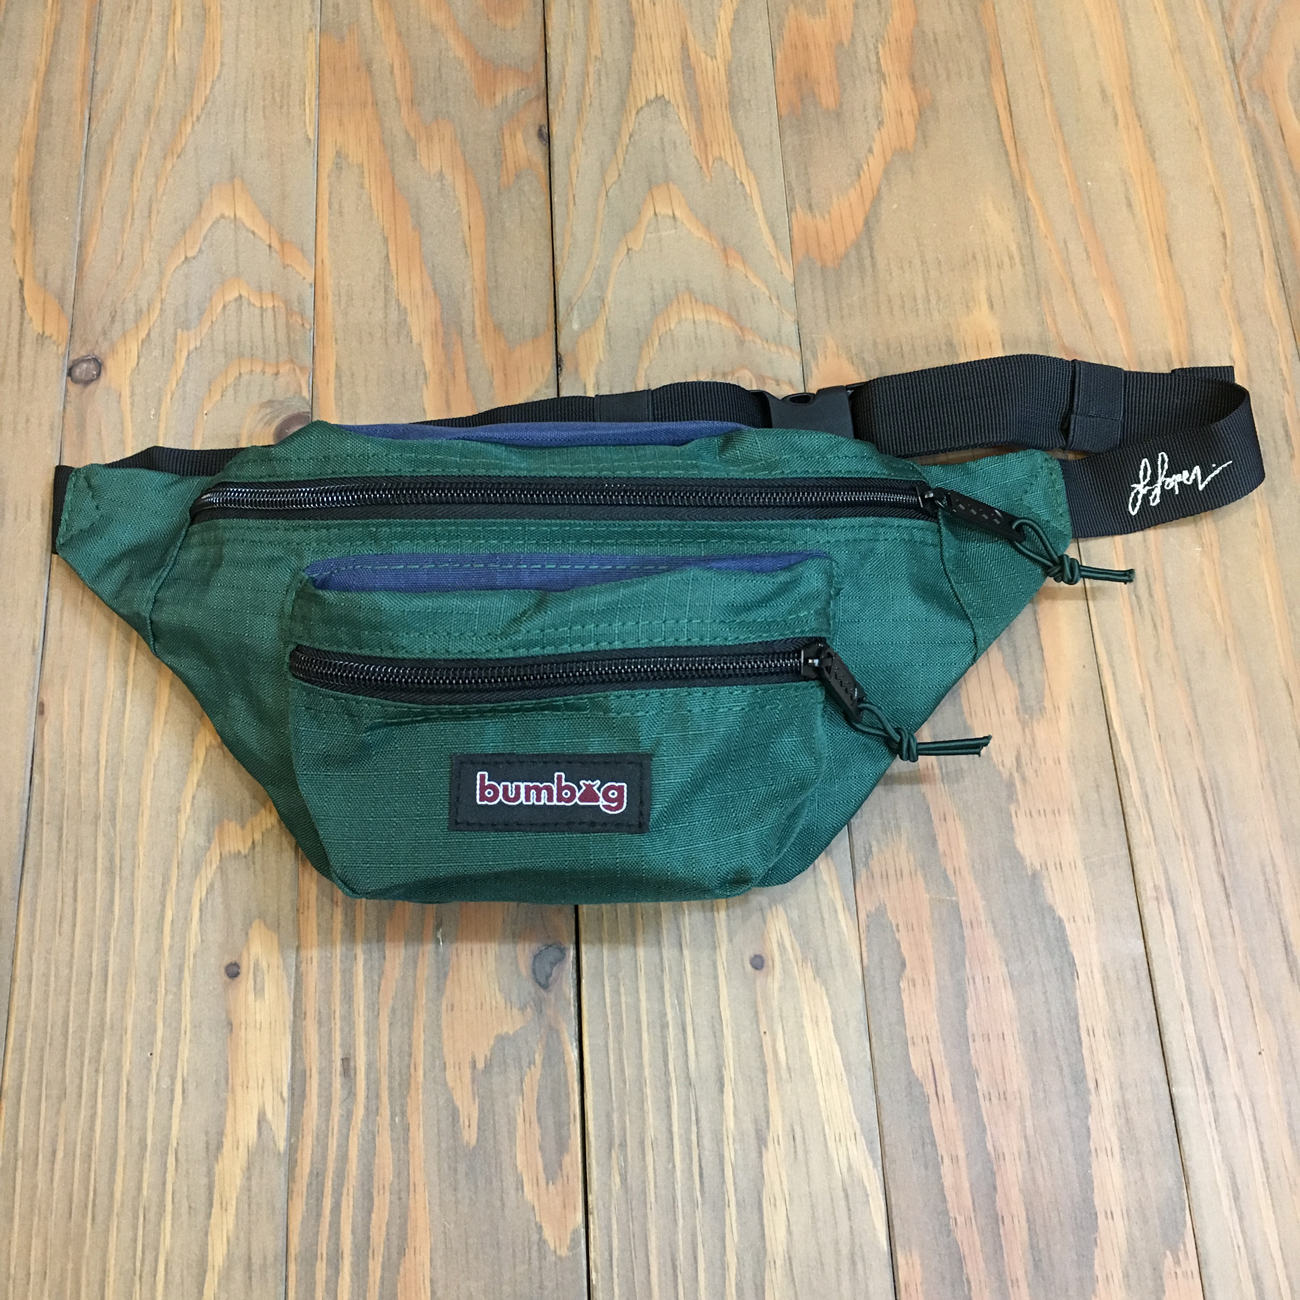 BUMBAG LOUIE LOPEZ HYBRID BASIC FOREST GREEN & NAVY